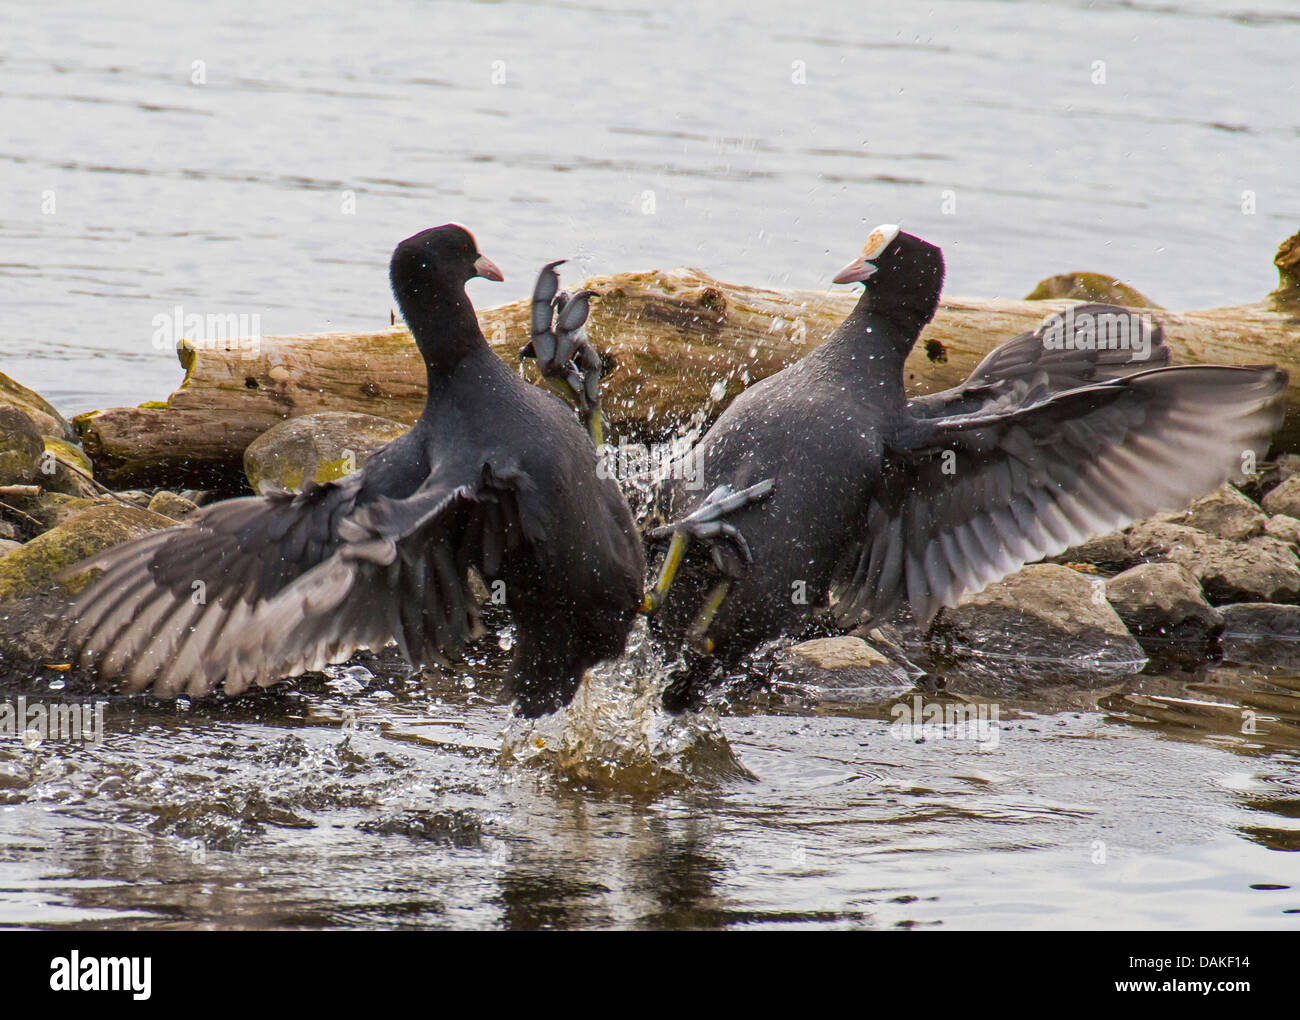 black coot (Fulica atra), two fighting black coots, Germany Stock Photo